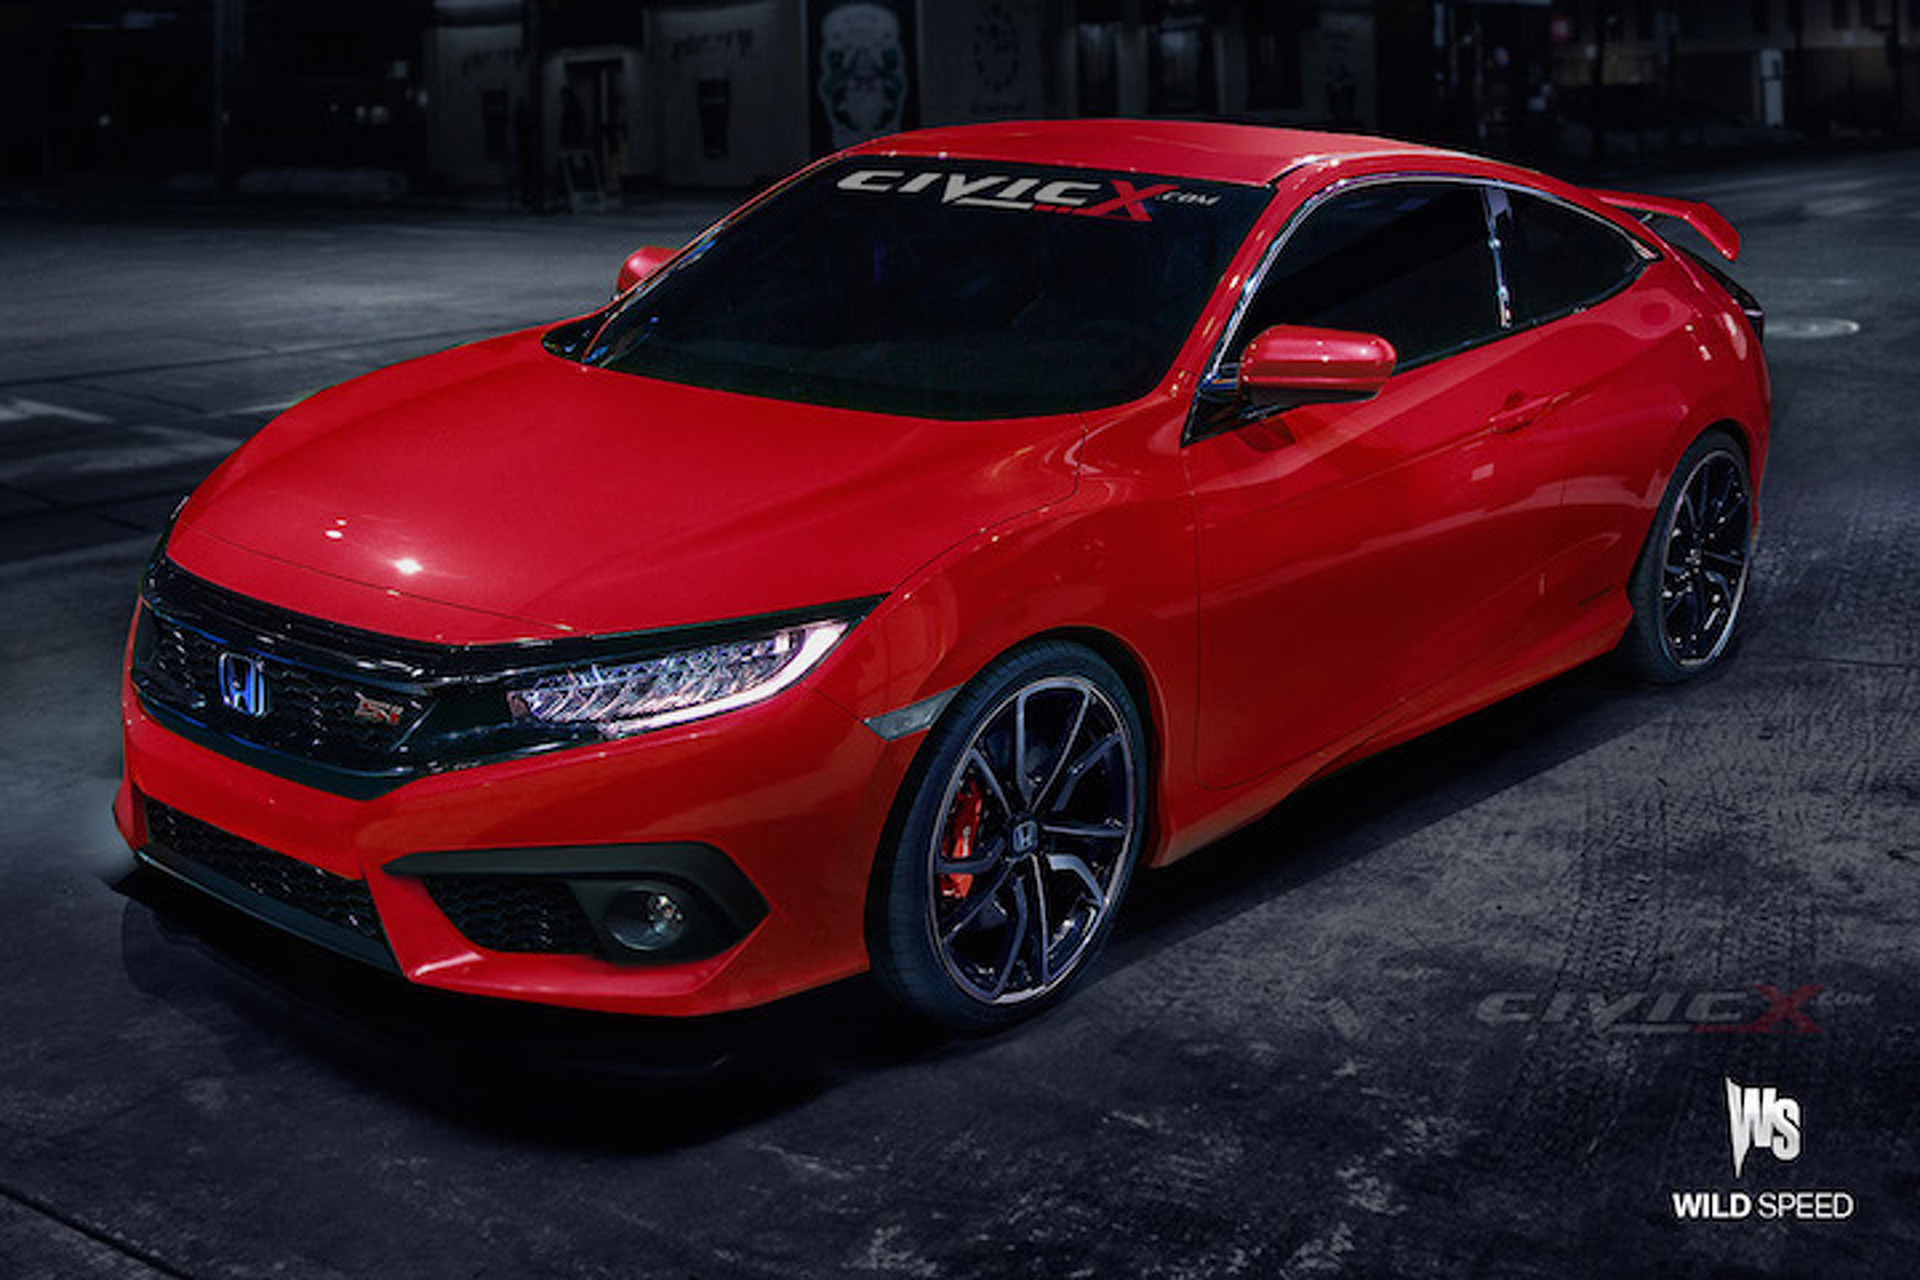 High Quality A New Honda Civic Si Wonu0027t Be Ready Until 2017u2014May Have 230HP